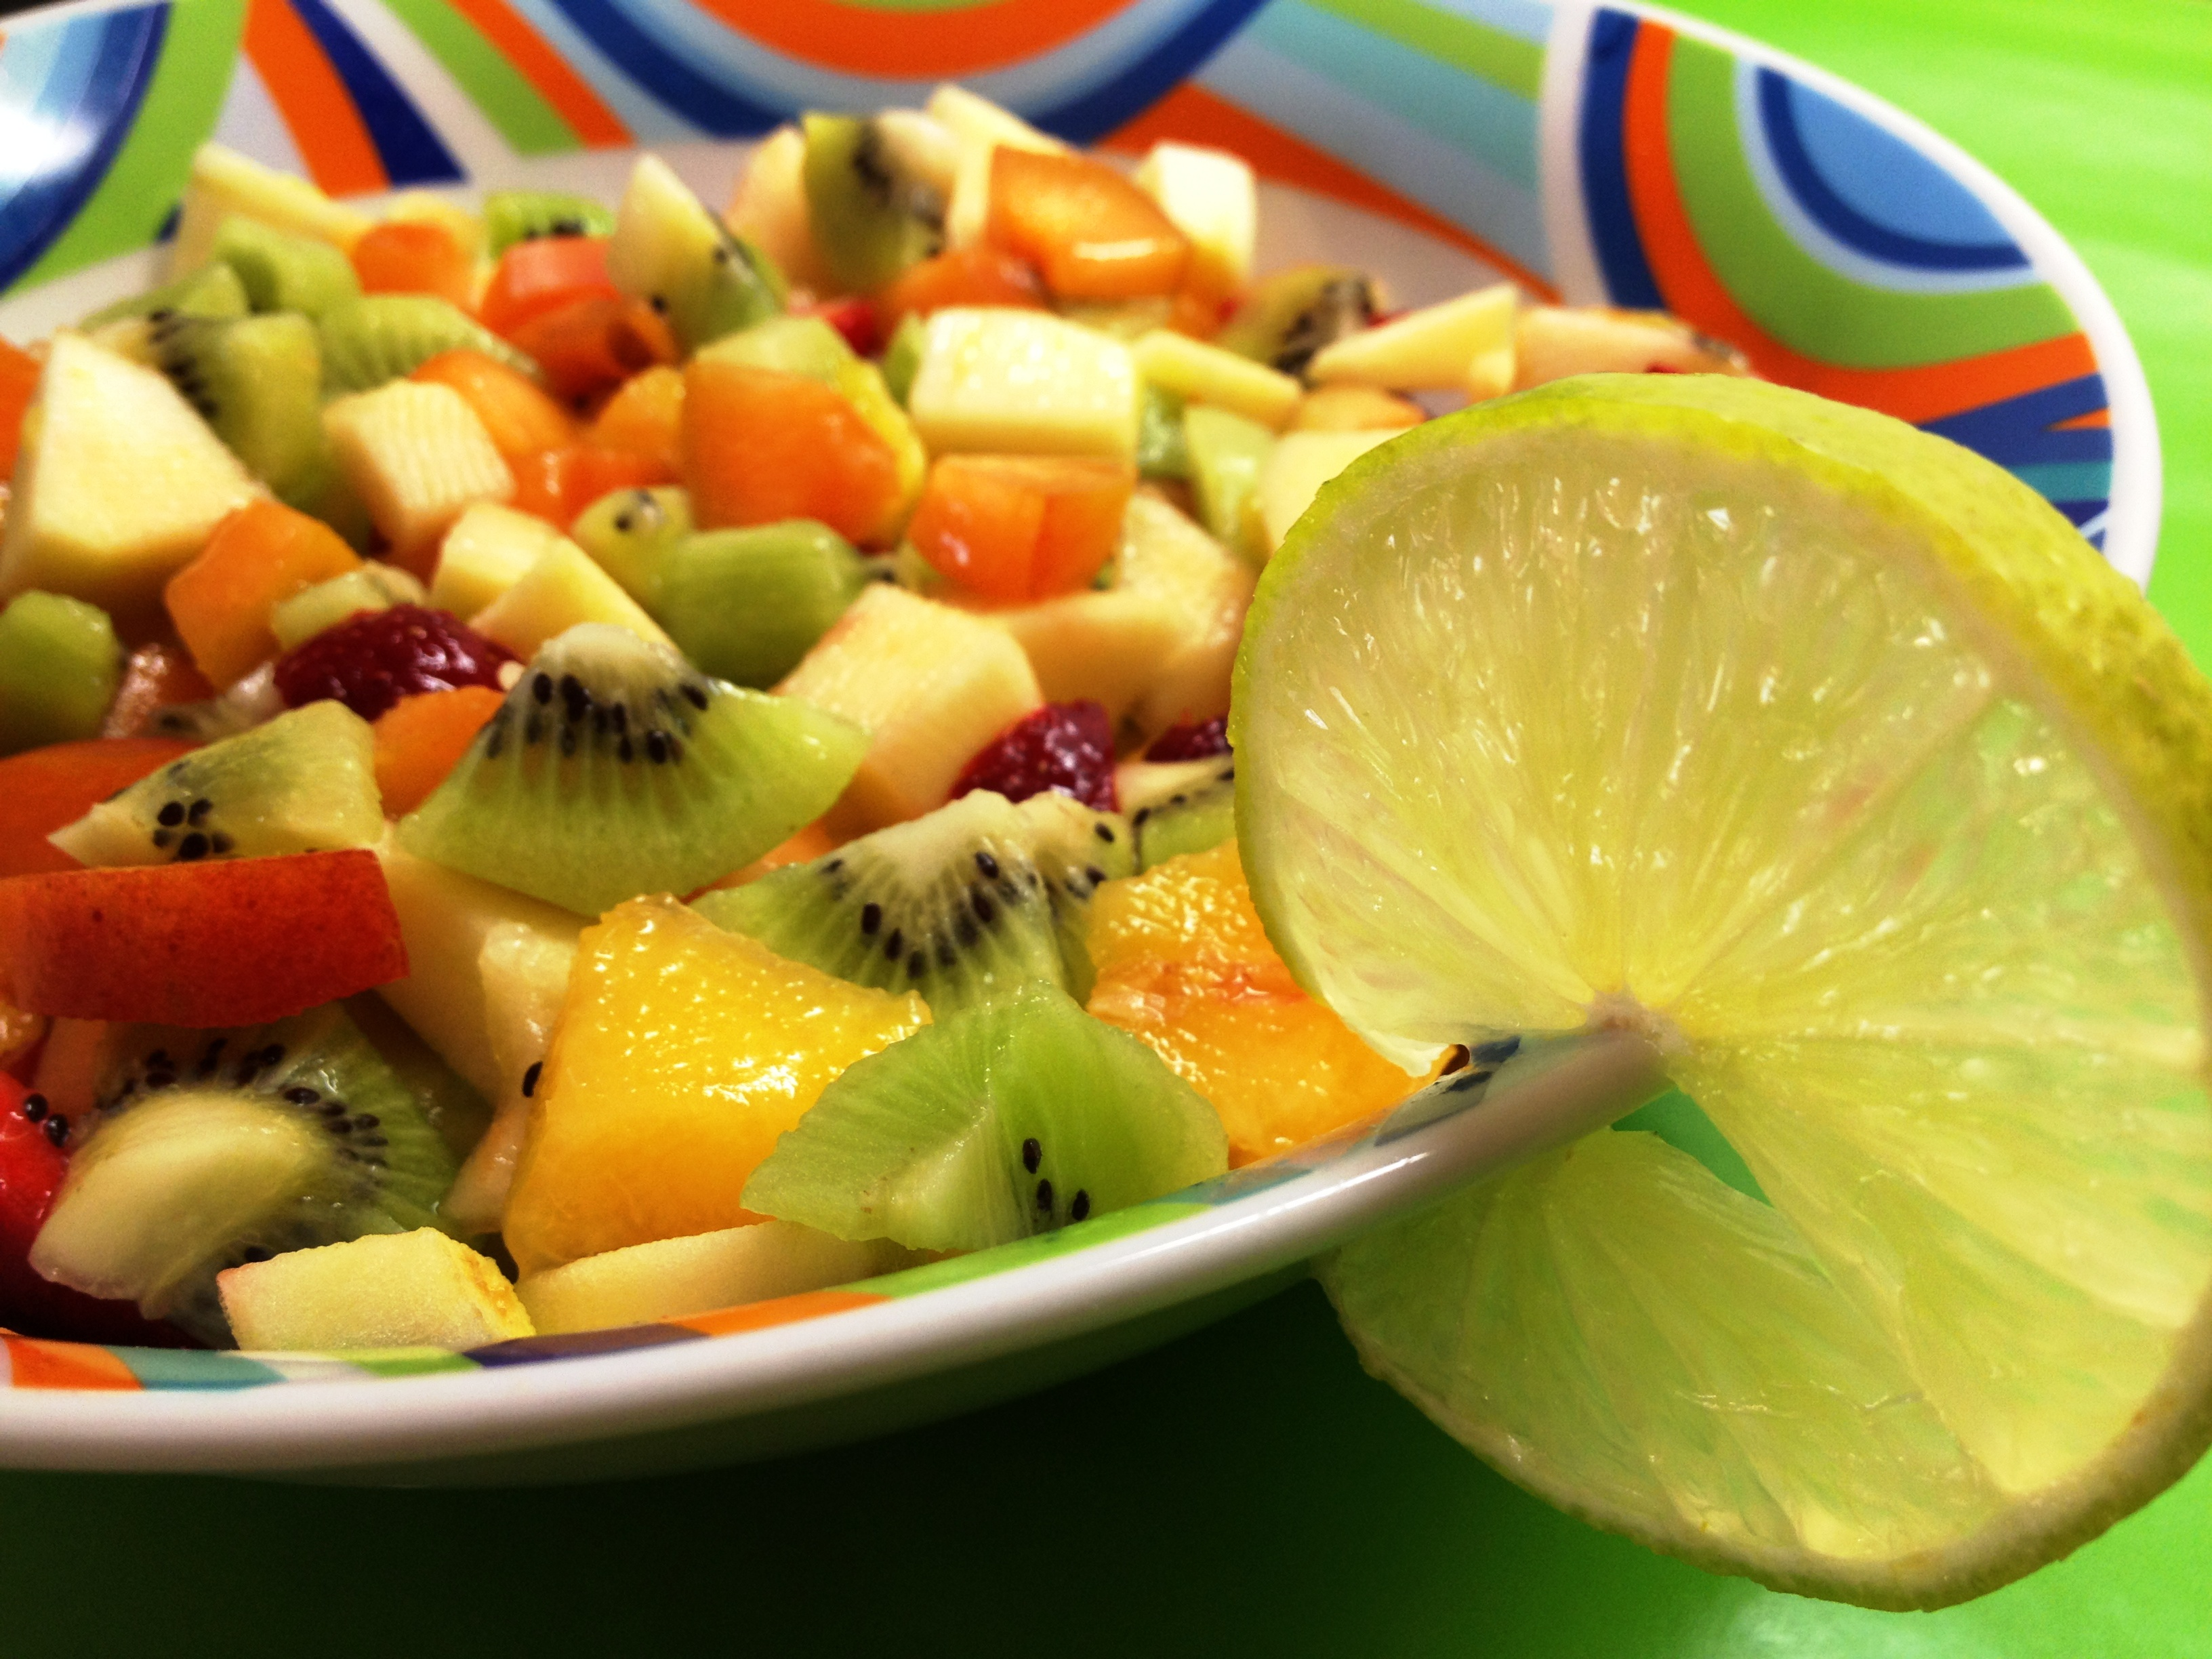 Snacking Smart: Tips for Healthy Party Eats